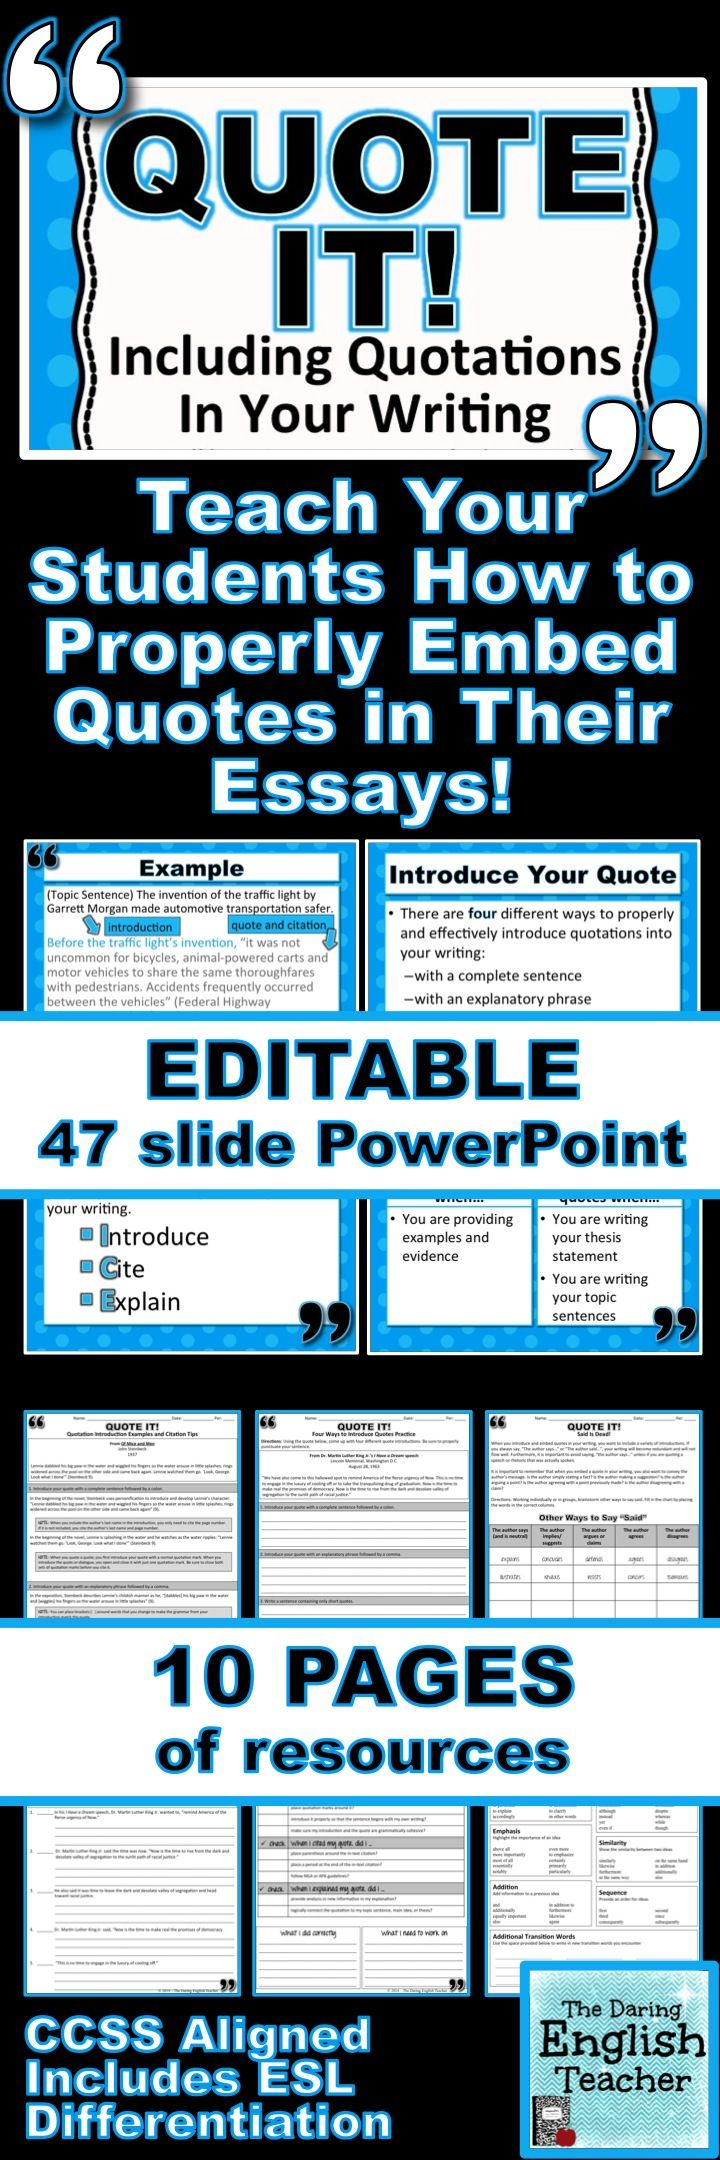 Educational Goals Essay  Best Ideas About How To Write Essay English  Best Ideas About How To  Write How To Write A High School  Pro Abortion Essay also How To Write An Argumentative Essay Outline Short Essays For High School Students Top  Ideas About Short  Global Warming Problem Solution Essay